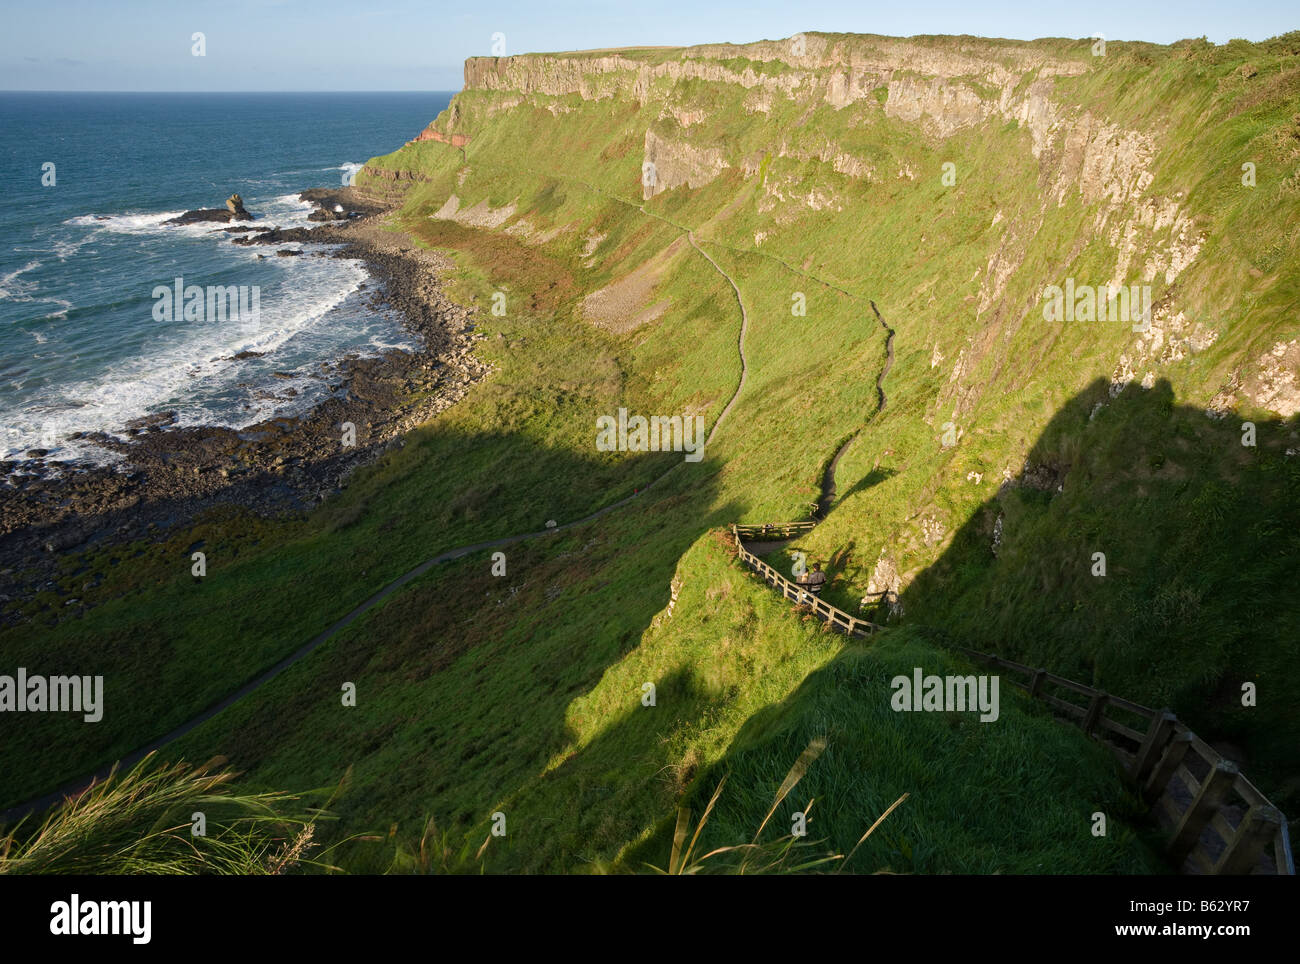 Steps down: The steps down to the causeway from the top of the cliff with the eastern headland beyond. - Stock Image